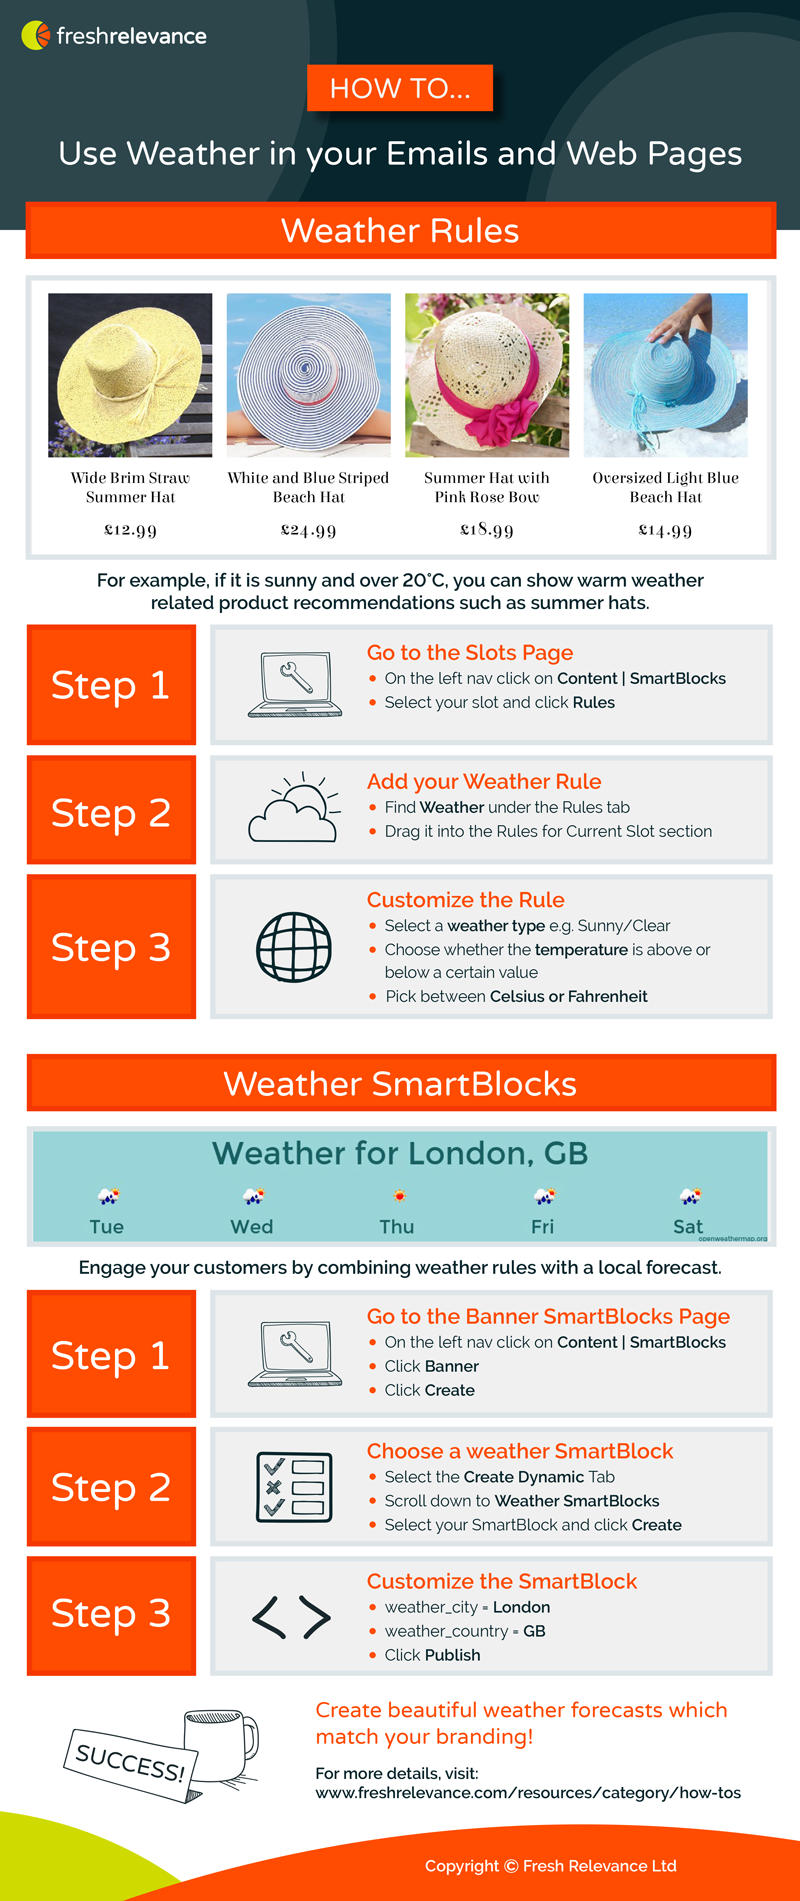 How to Use Weather in your Emails and Web Pages